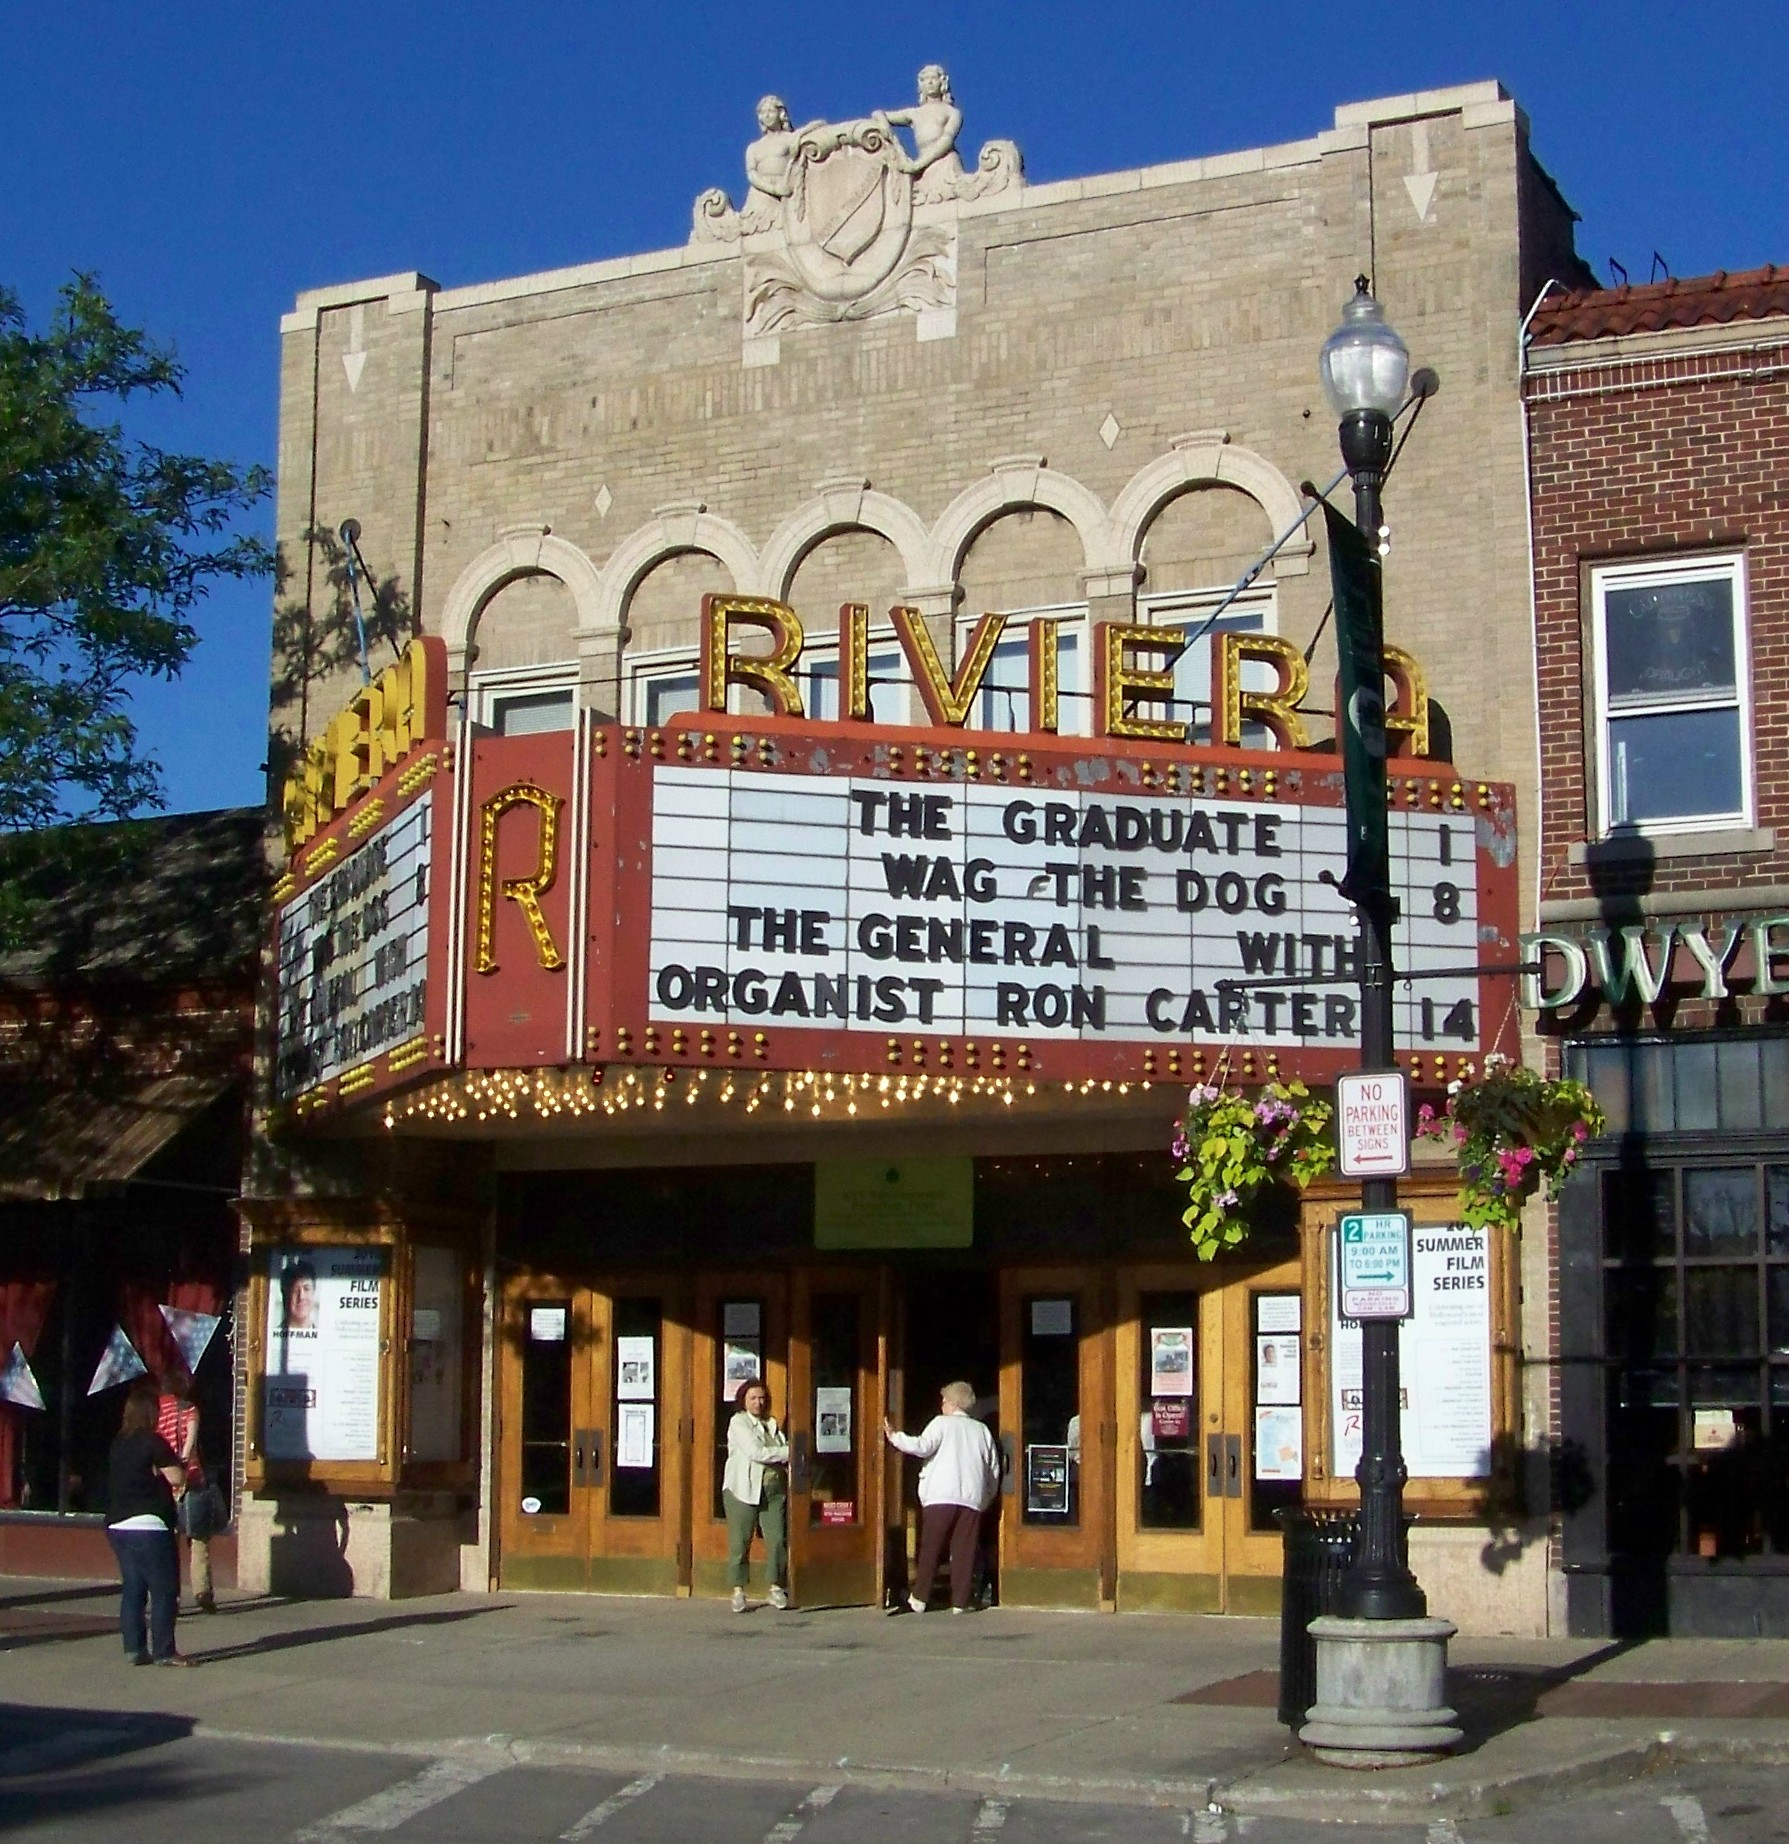 Summer Escape In The Berkshires: Summer Film Festival In A Classic Old Theatre